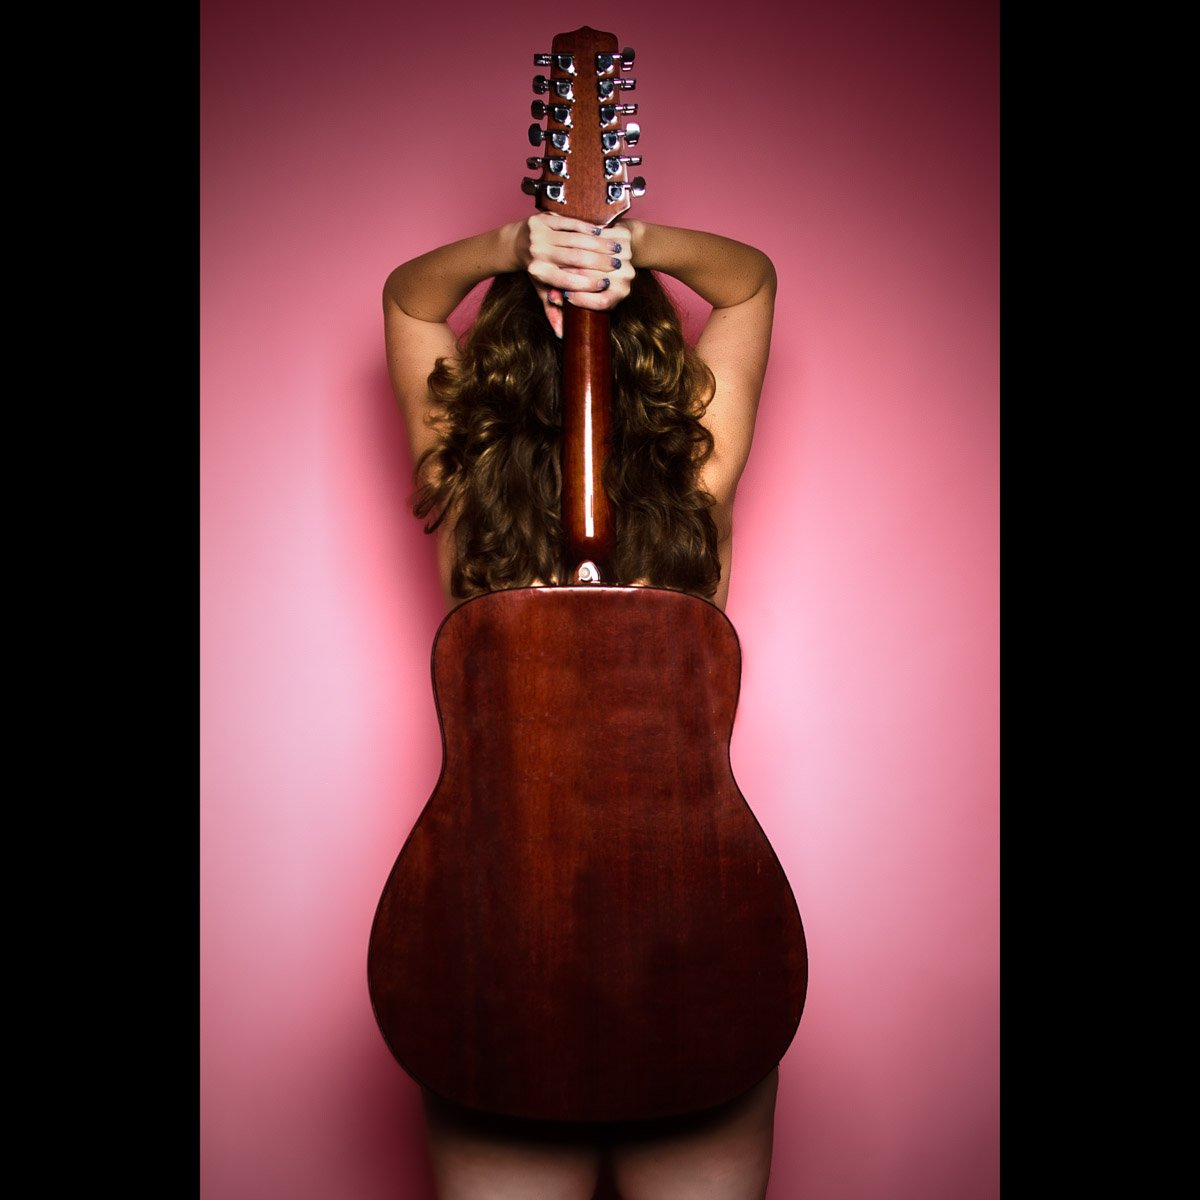 Sexy girls with guitar — photo 4